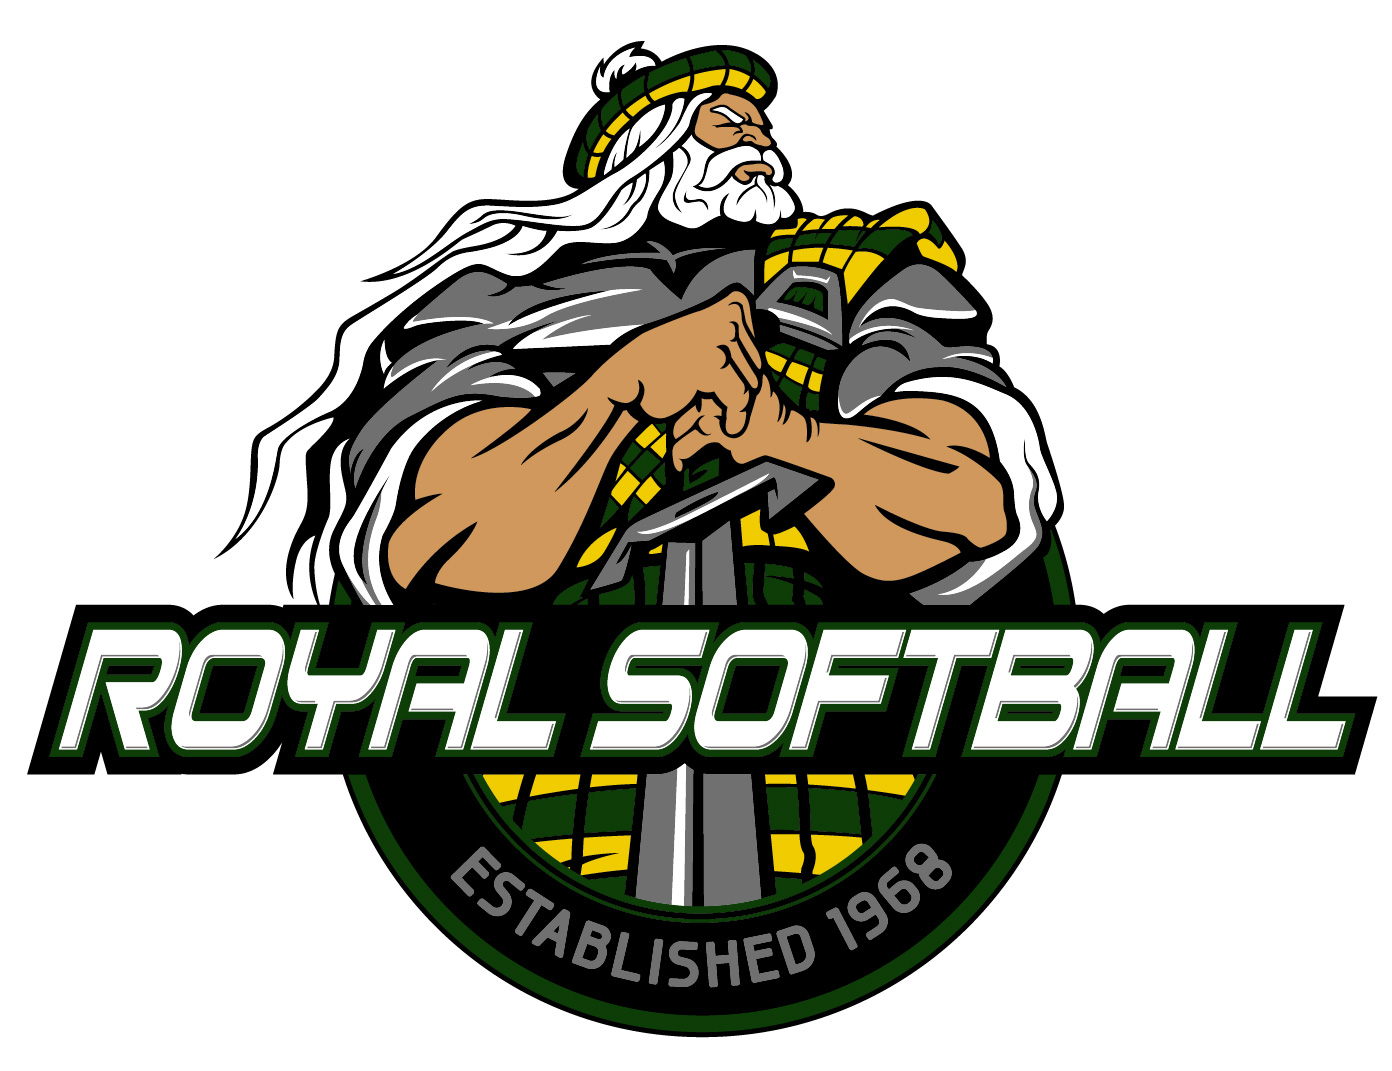 ROYAL SOFTBALL